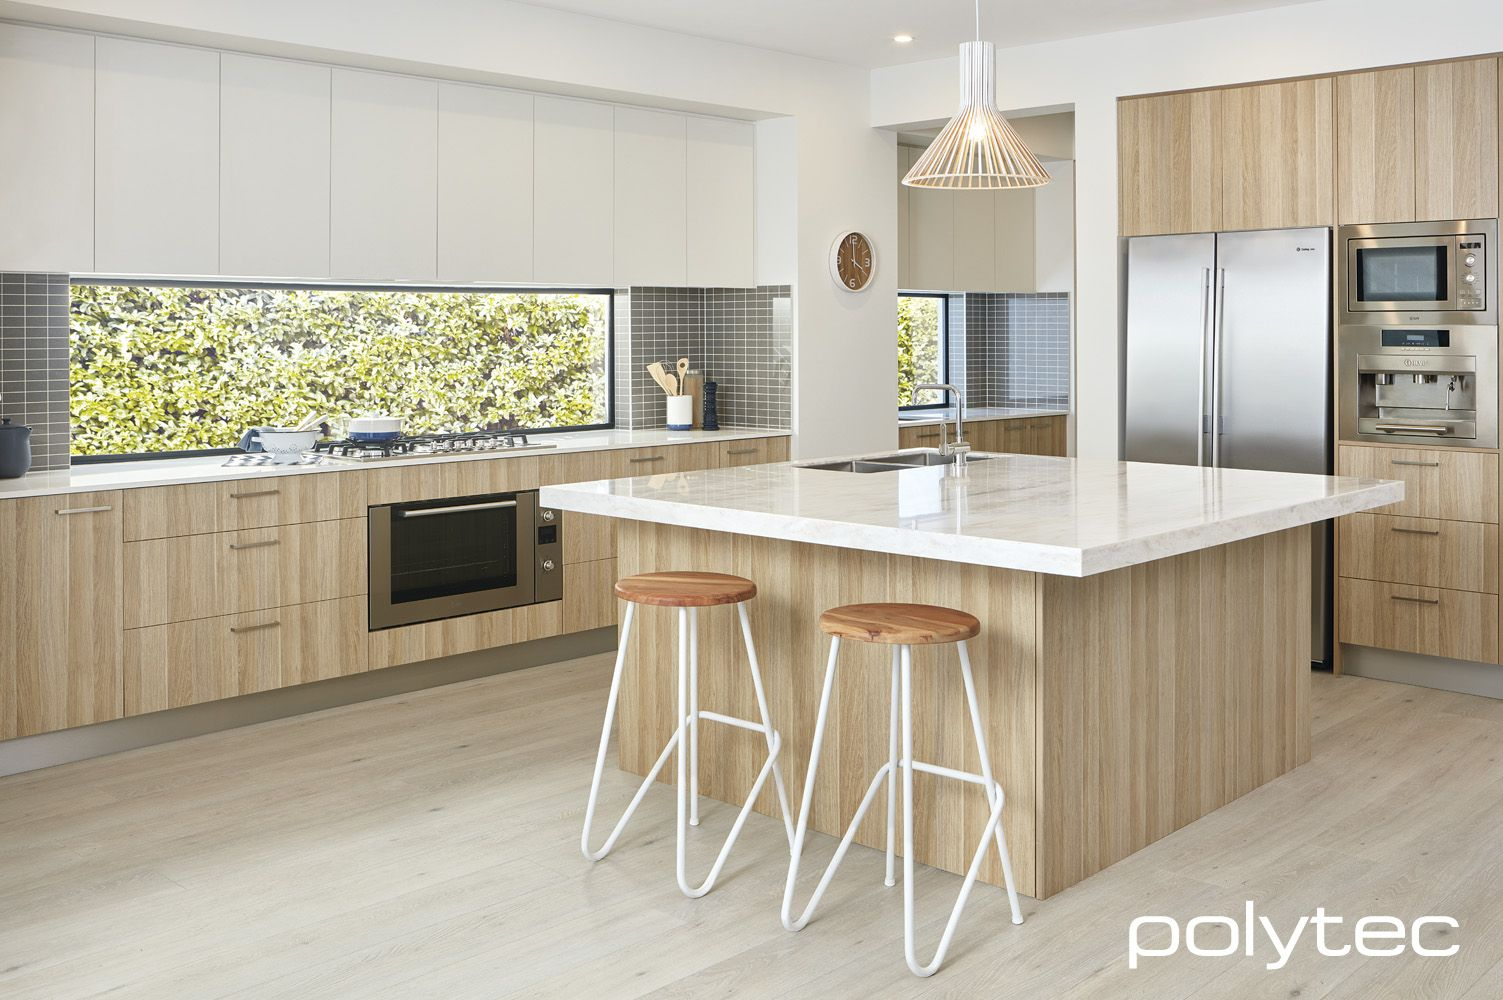 Polytec doors and panels in ravine natural oak overhead for Natural wood kitchen designs